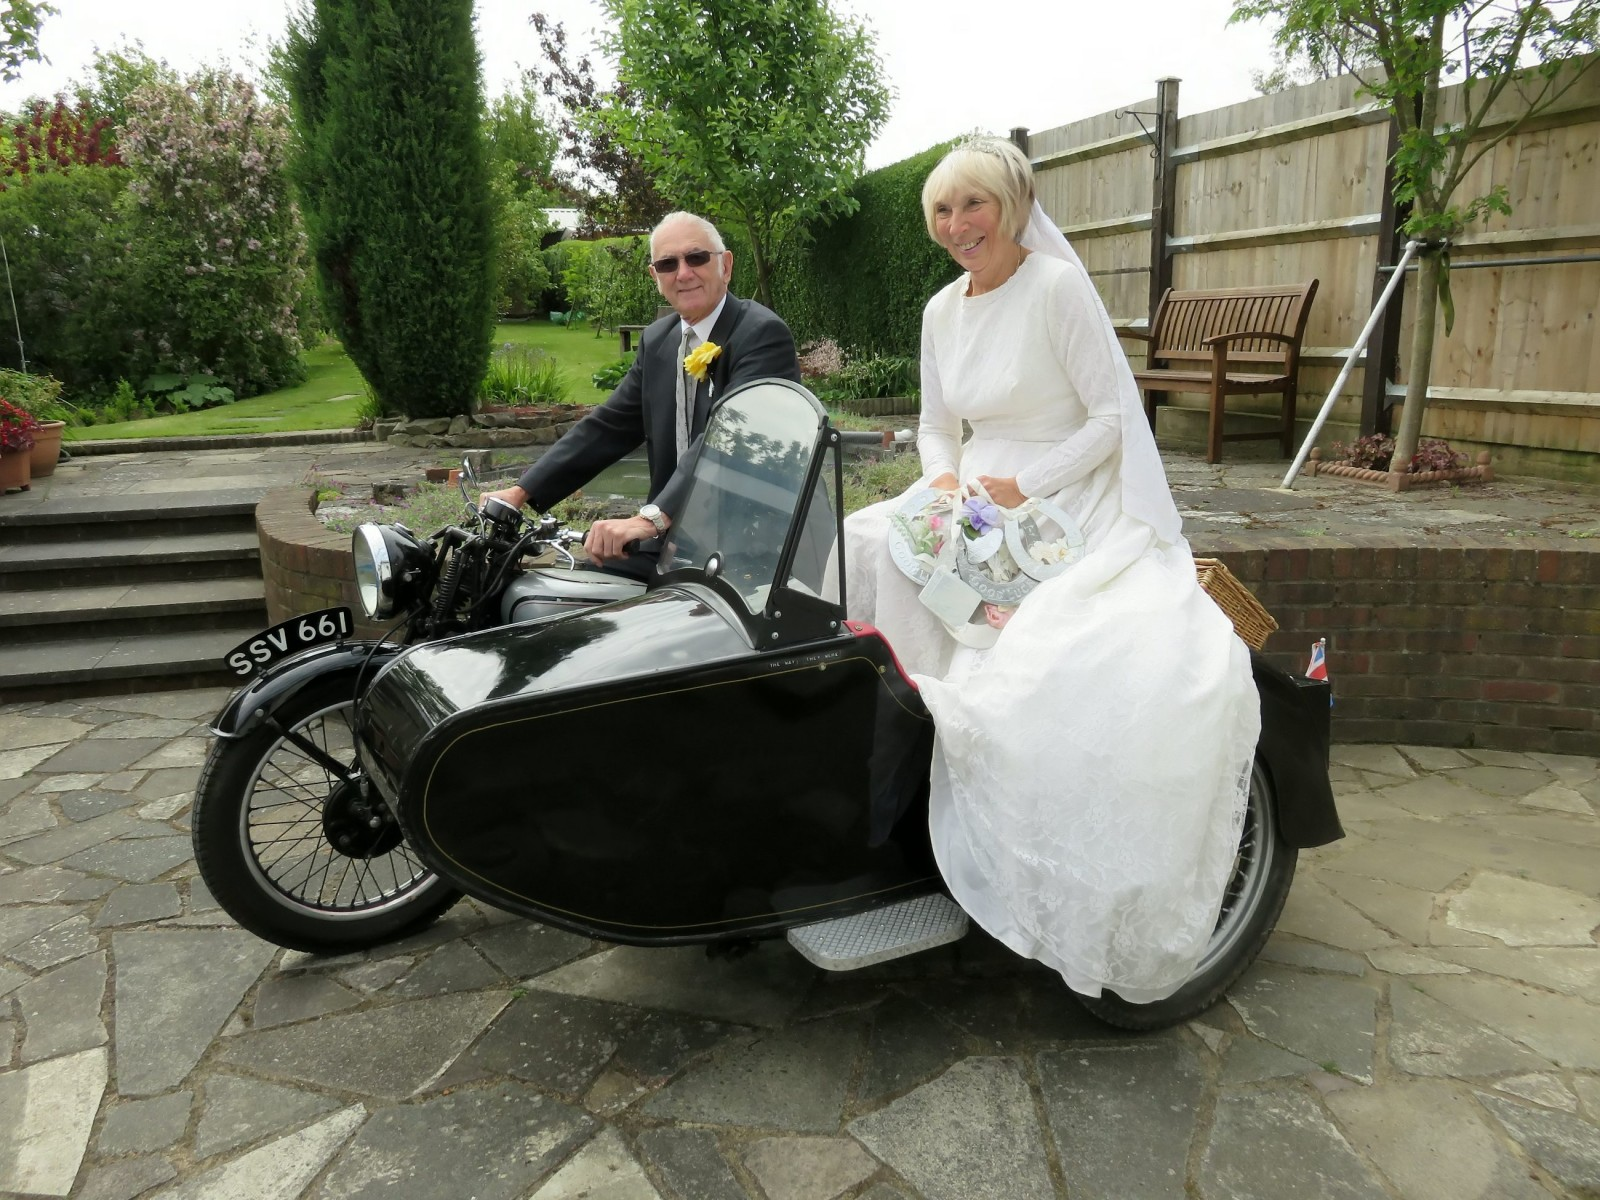 Gran celebrates 50 years of marriage by shedding SIX stone to fit into original wedding dress